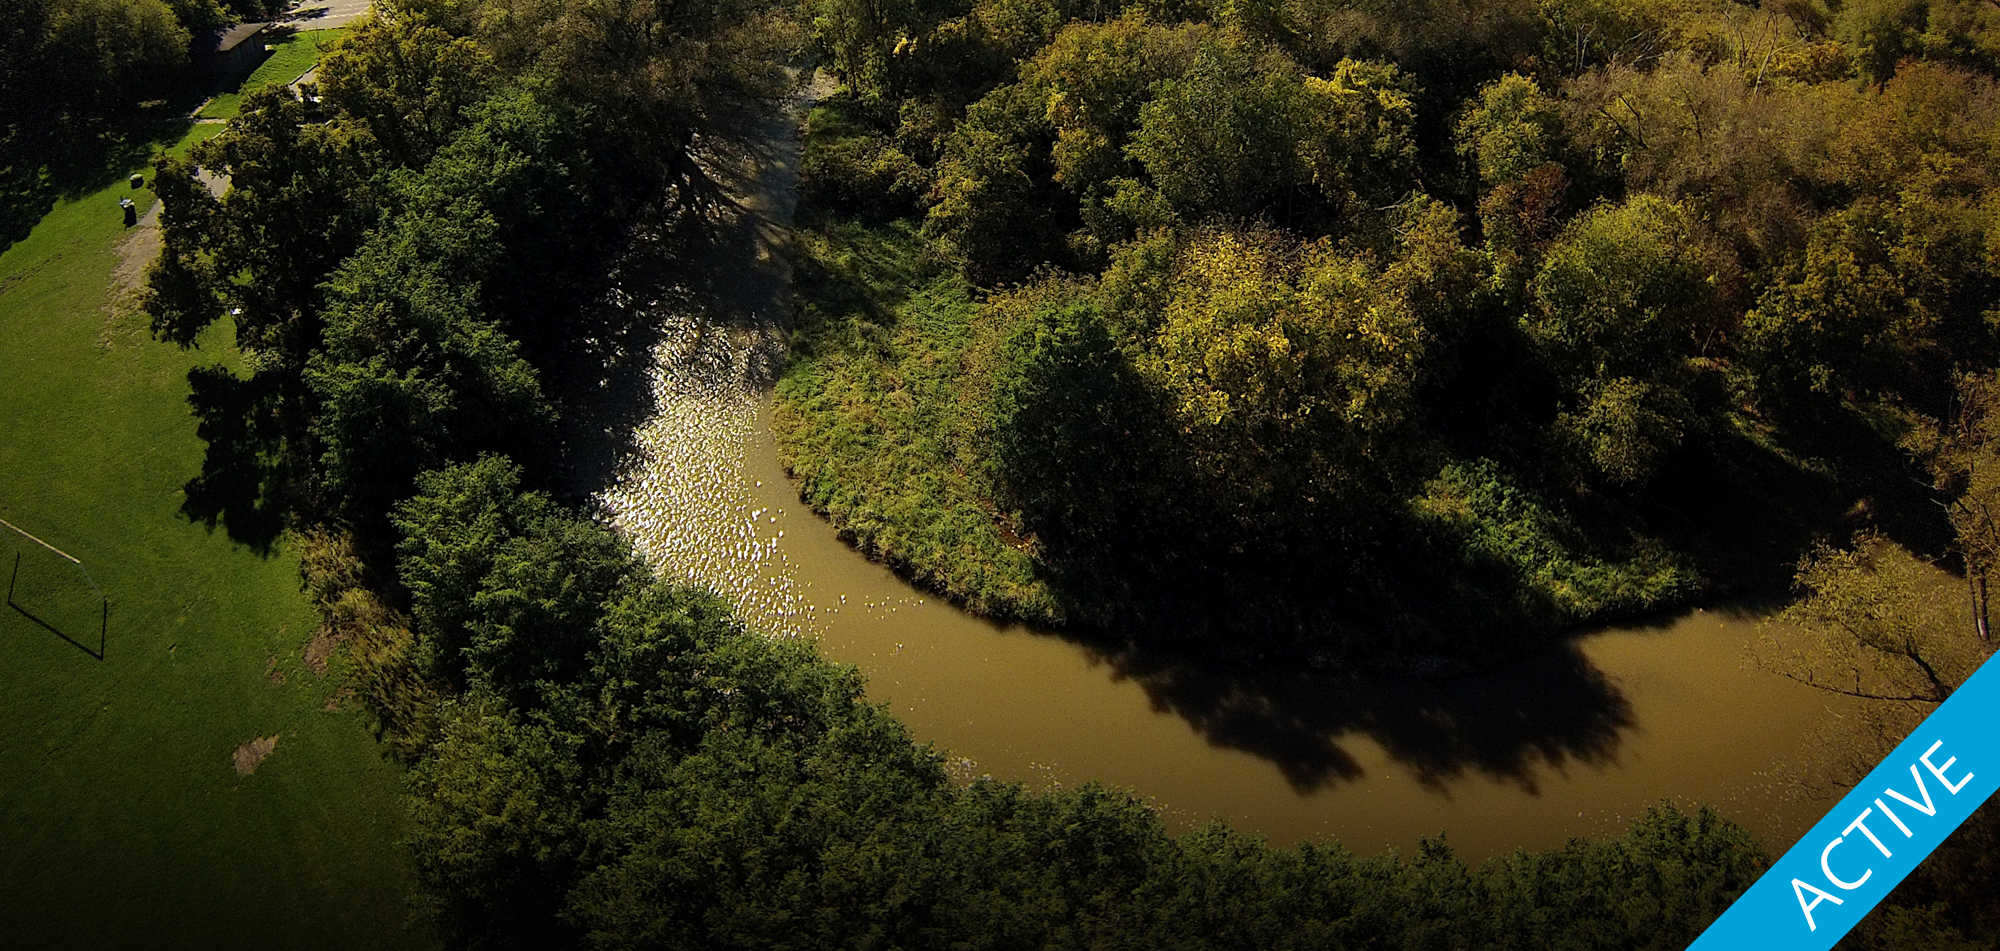 Line 9 crosses the Humber River in northwestern Toronto. Photo by Dylan Neild.